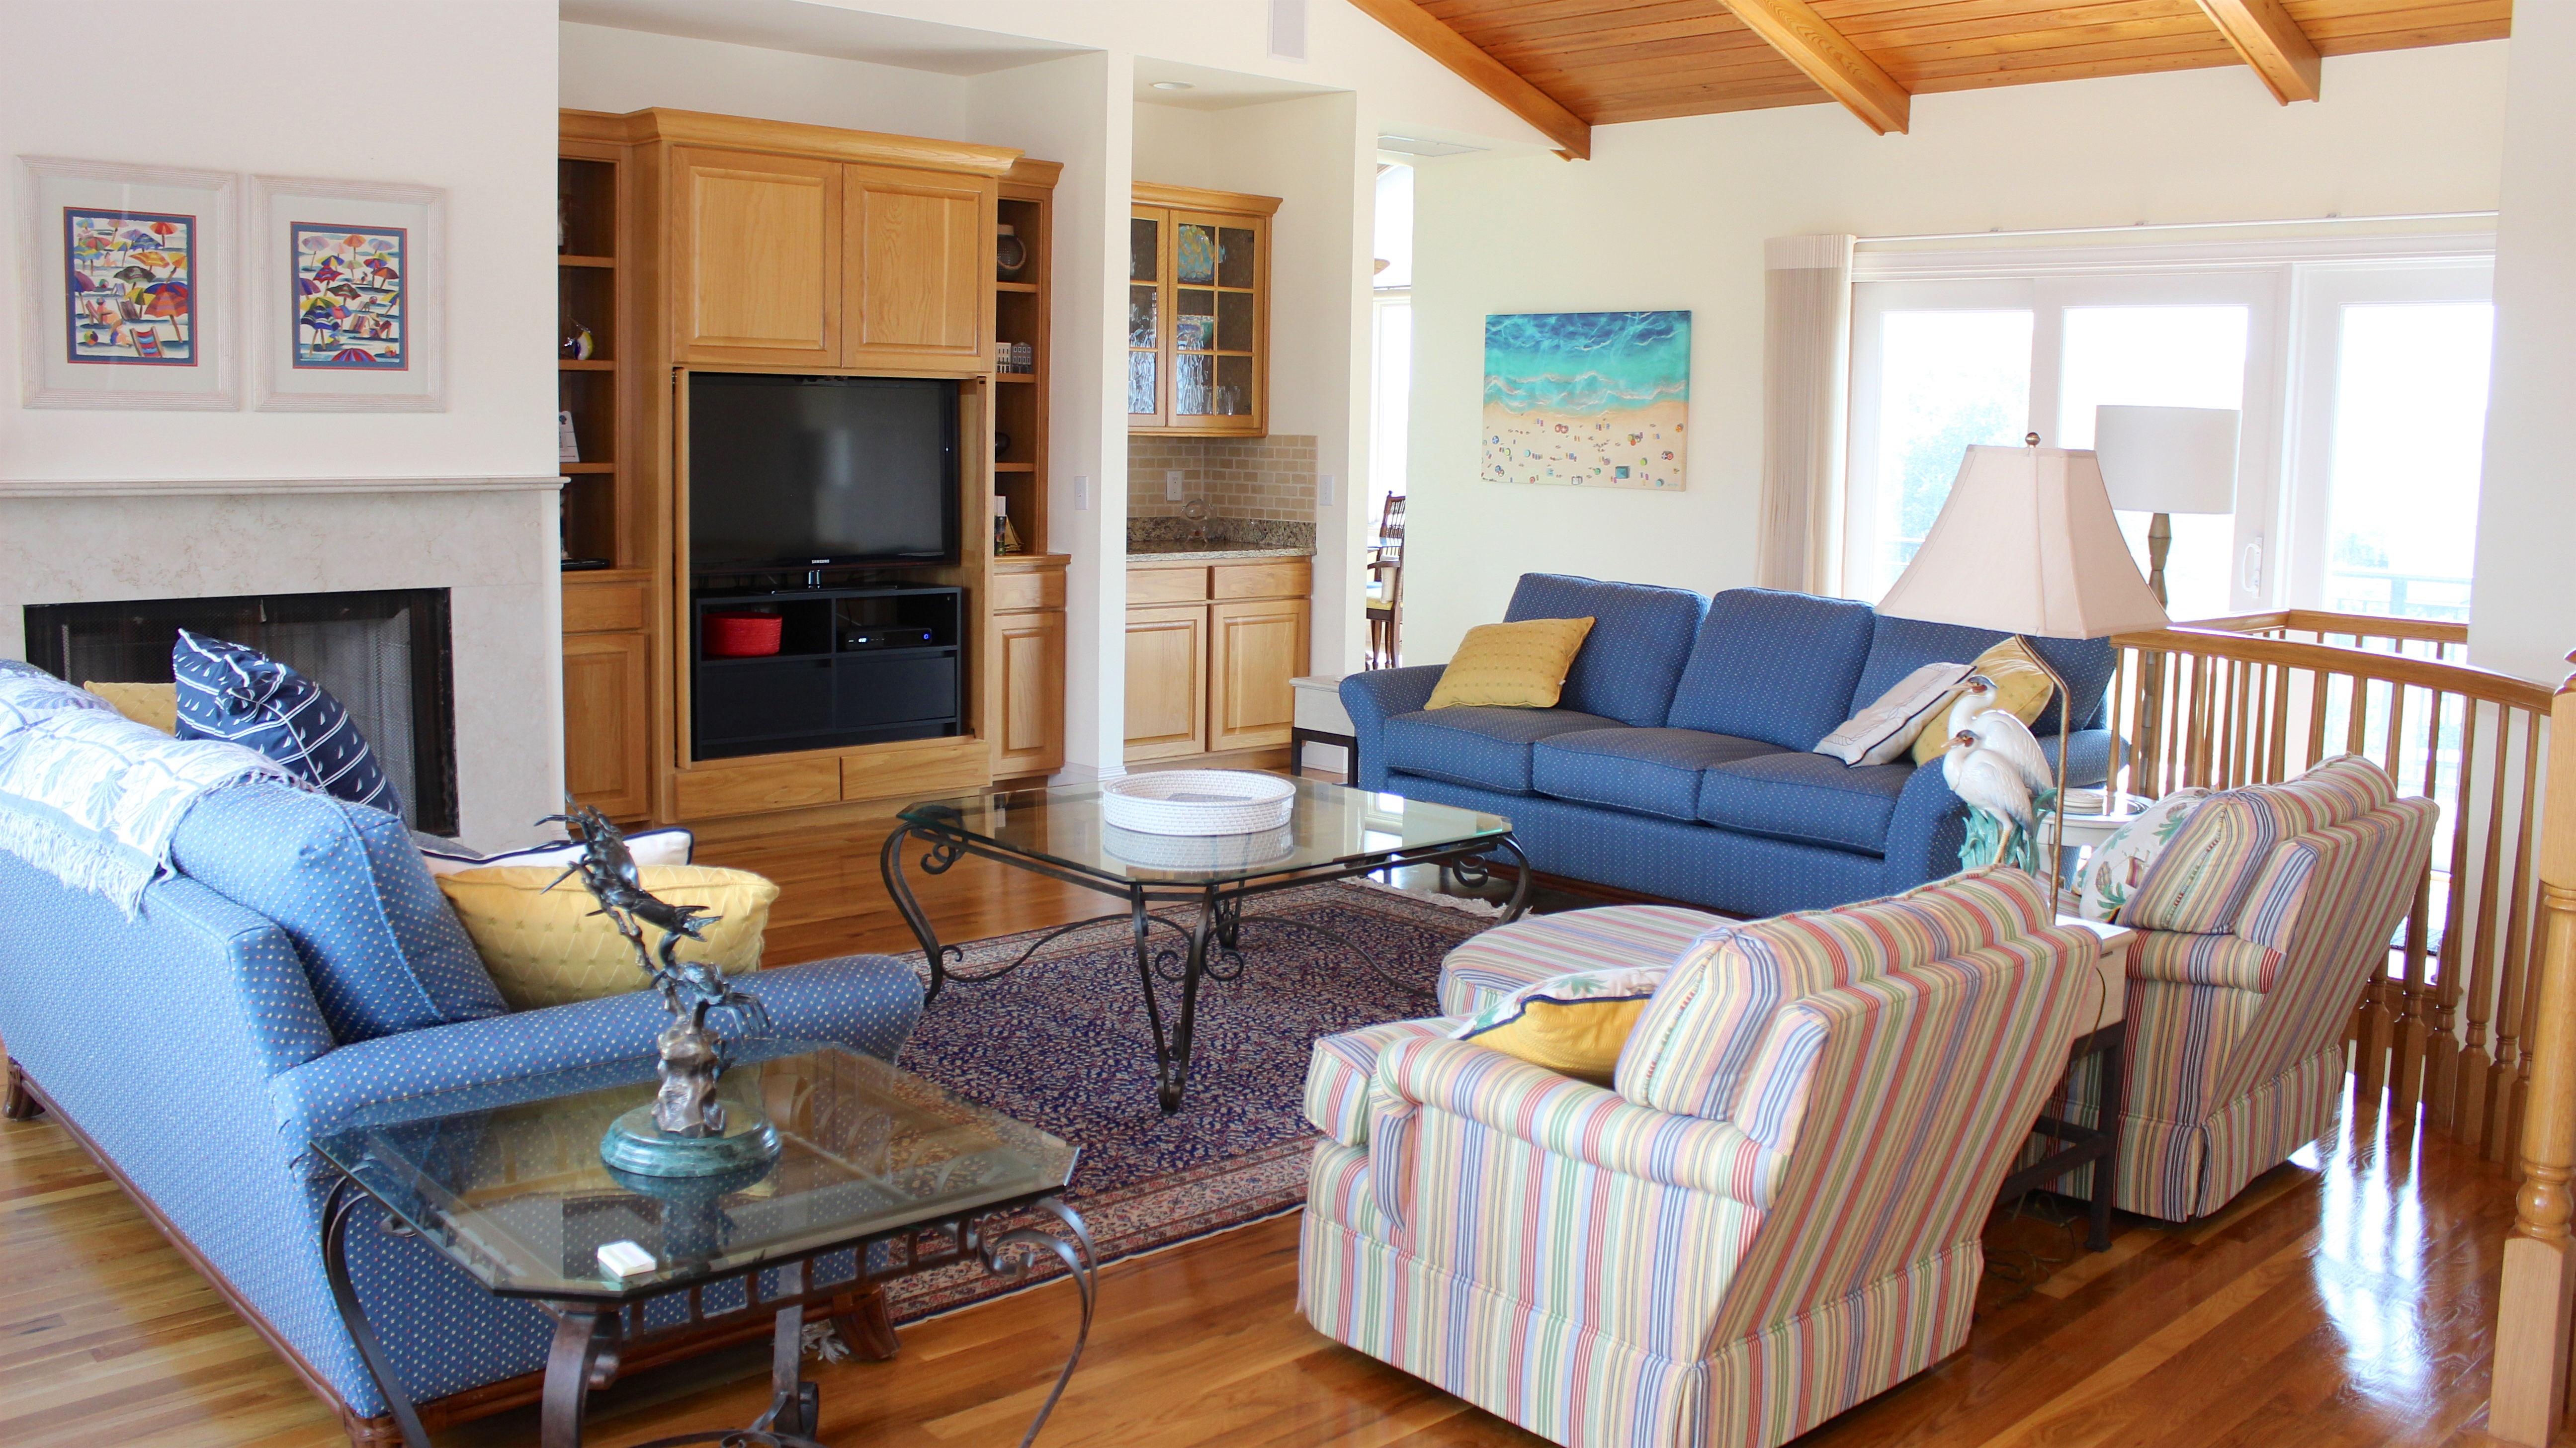 Head upstairs to the great room, kitchen, and master bedroom.